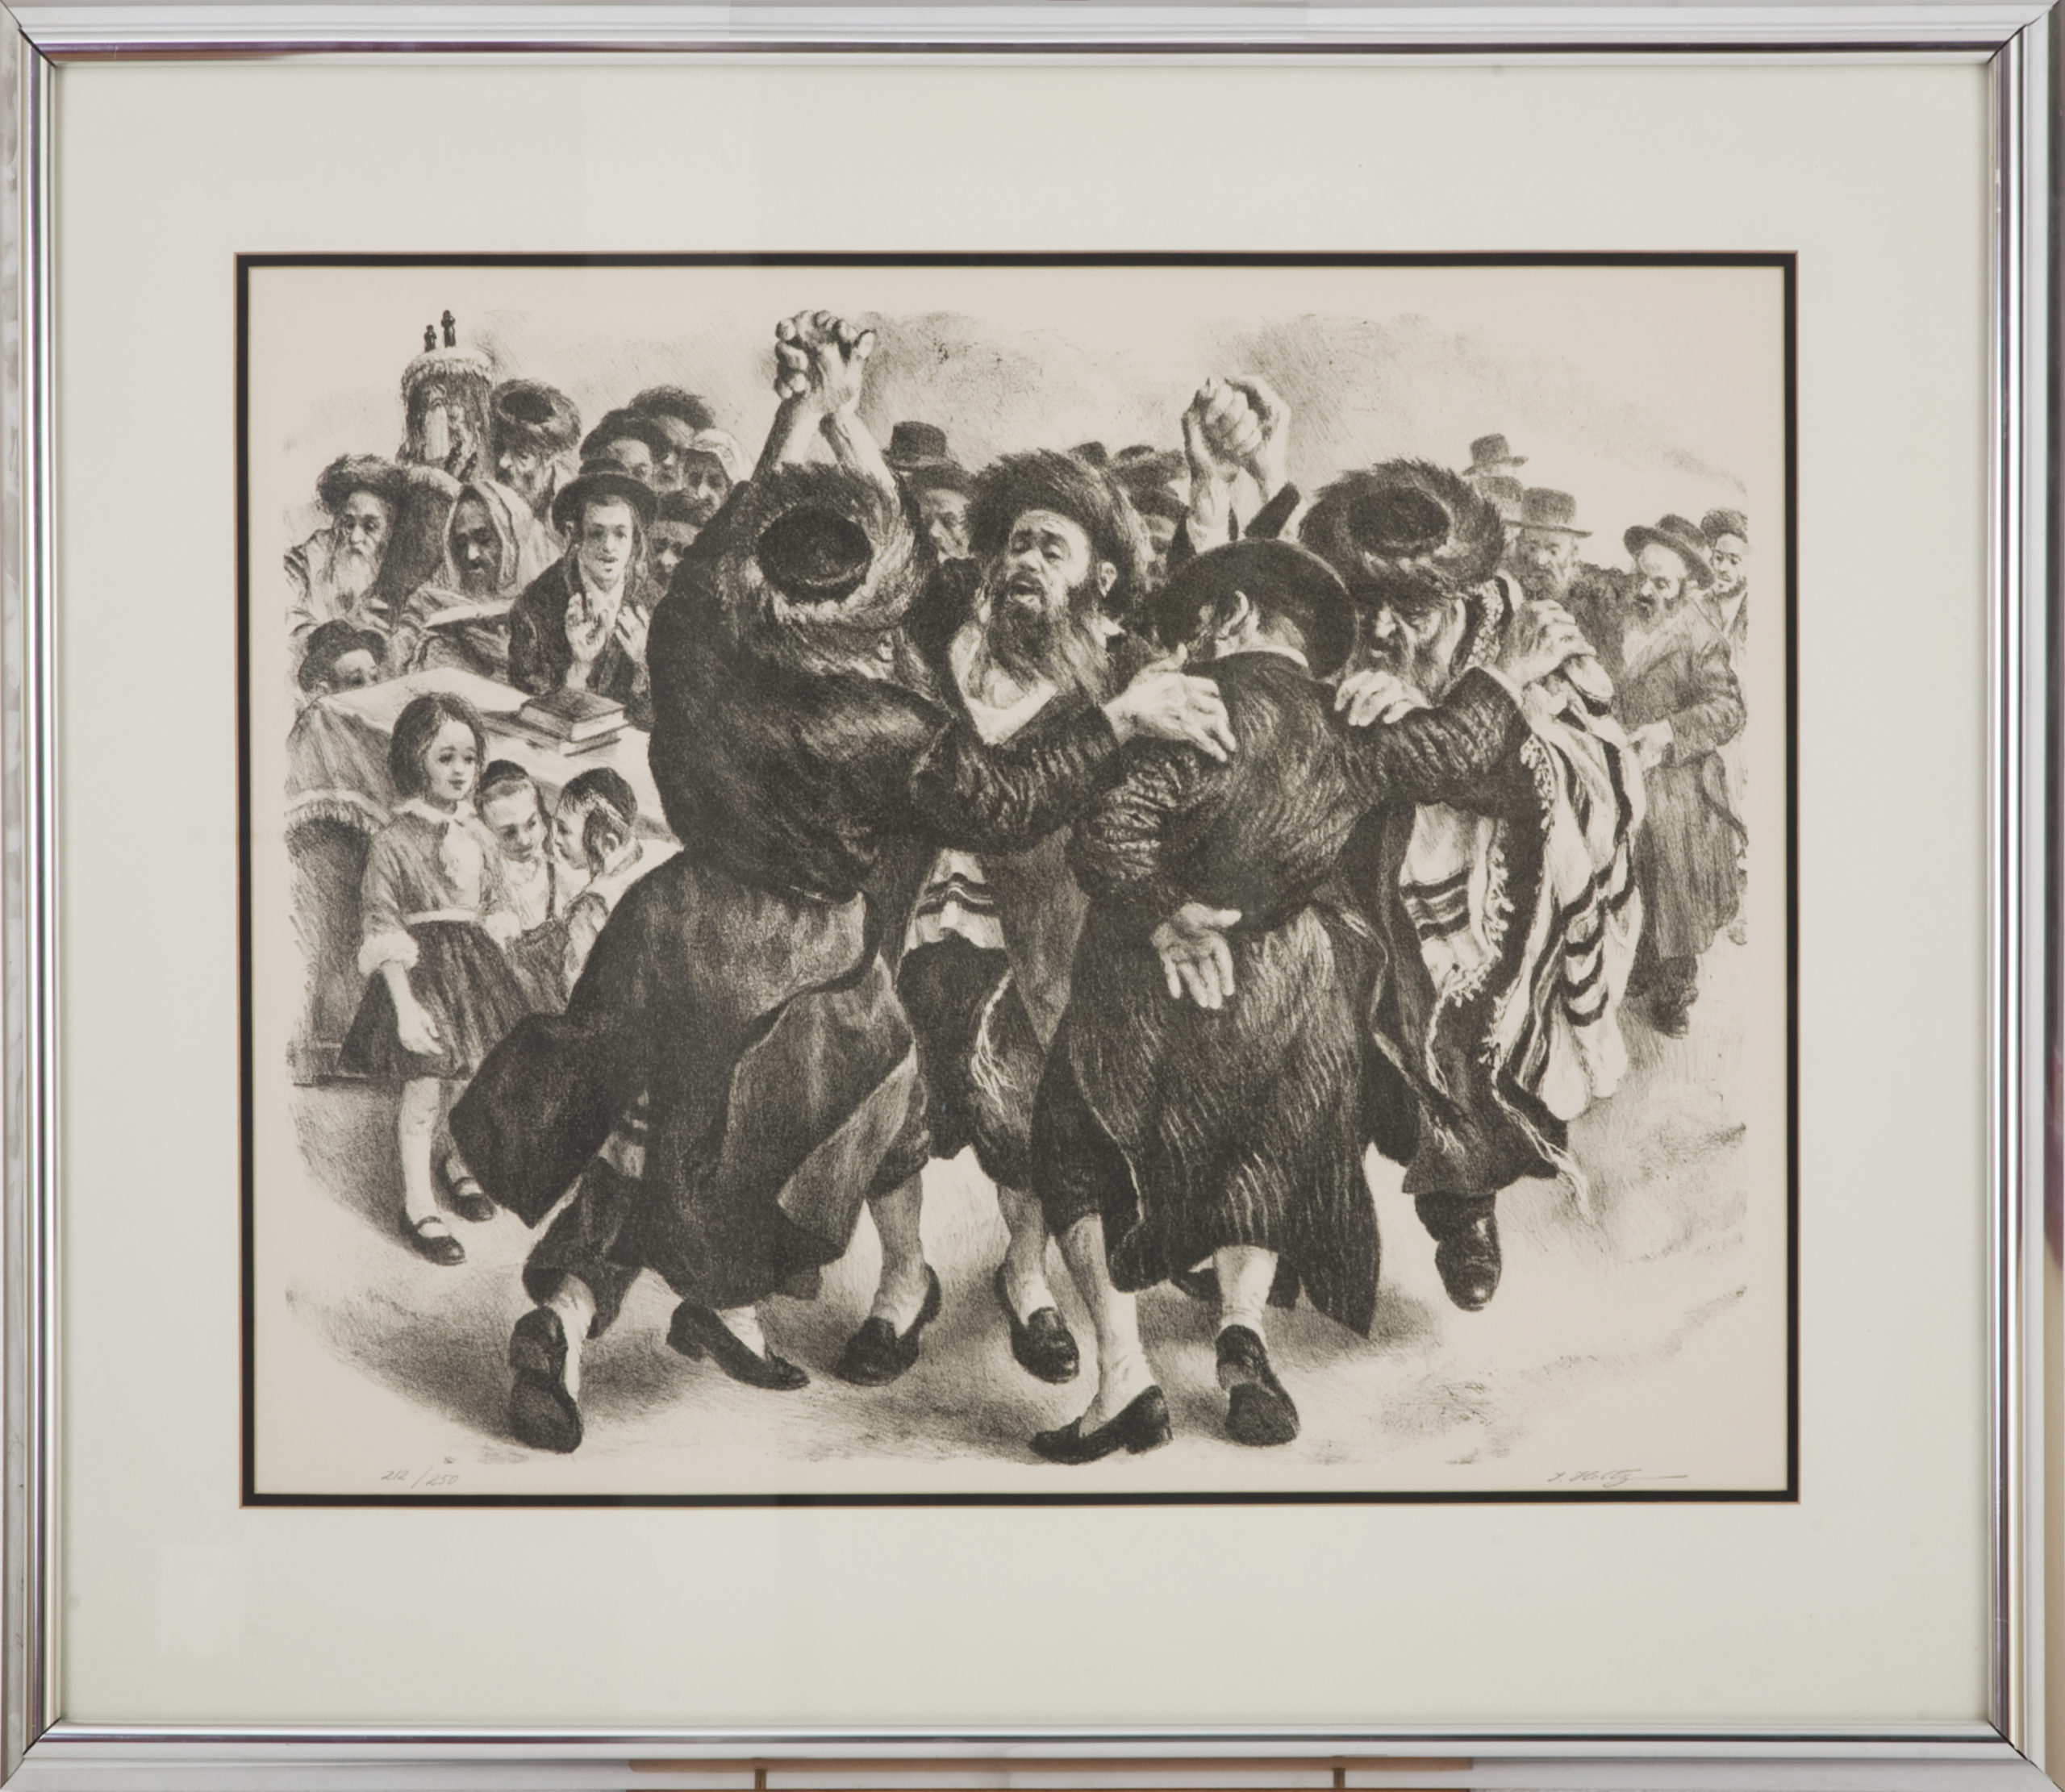 L11BF Rejoicing 1974 - Black & White-Lithograph - 34 x 29 - Framed